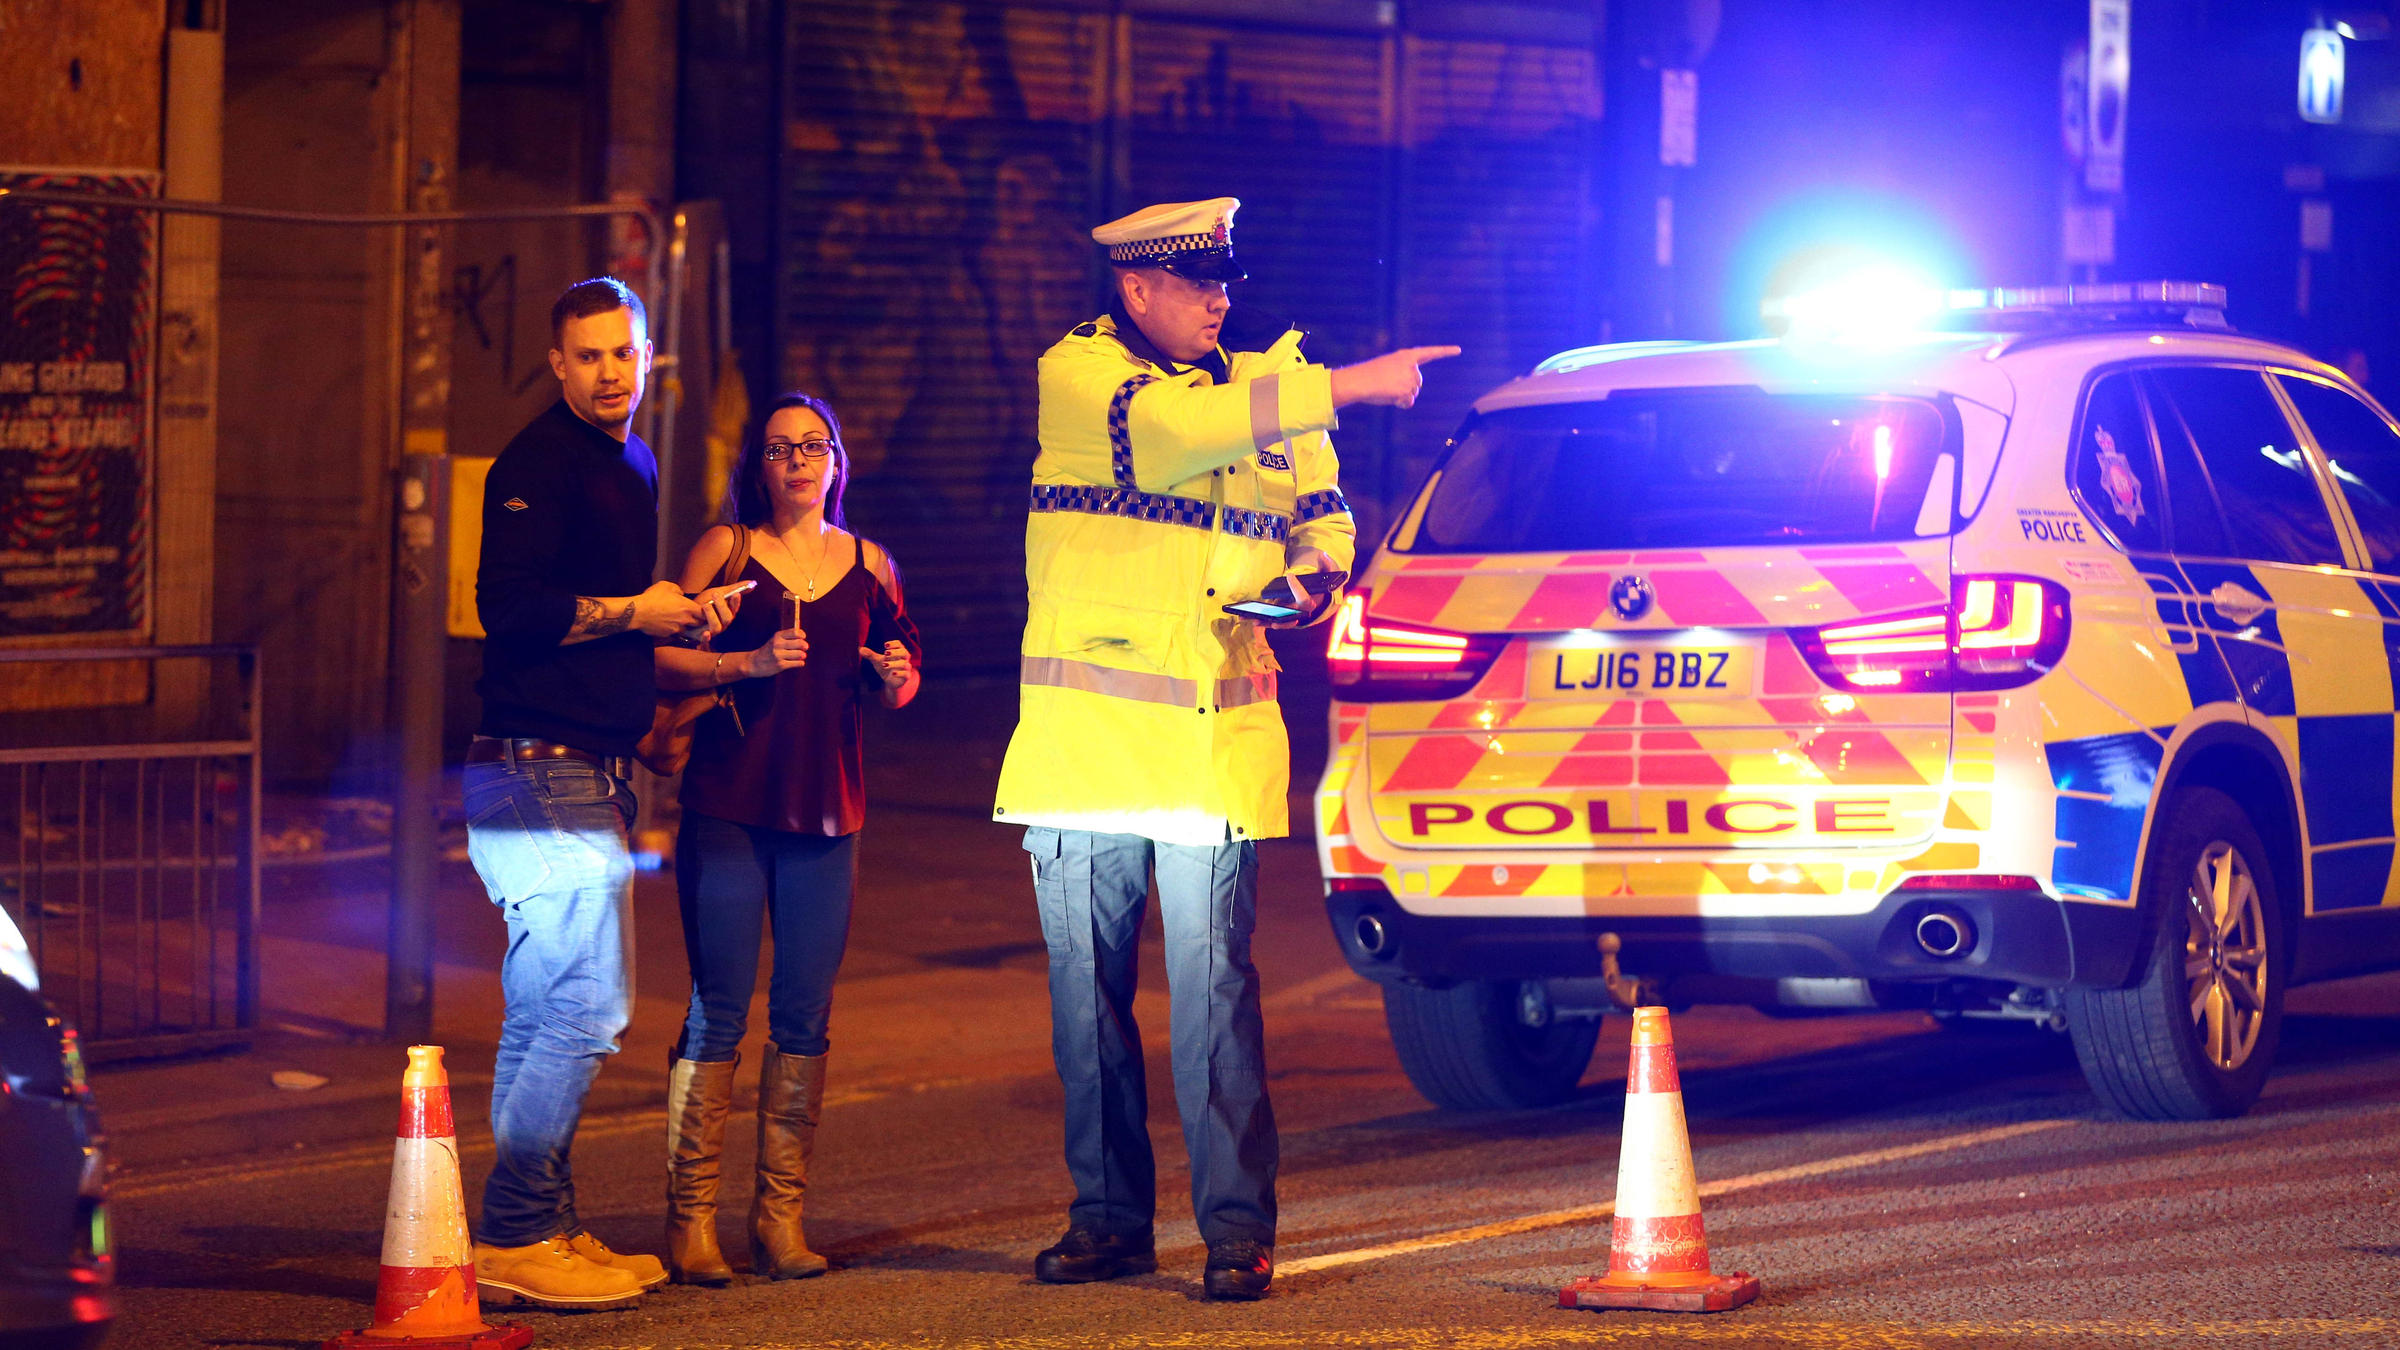 Manchester Arena attack: Police make first arrests after bombing